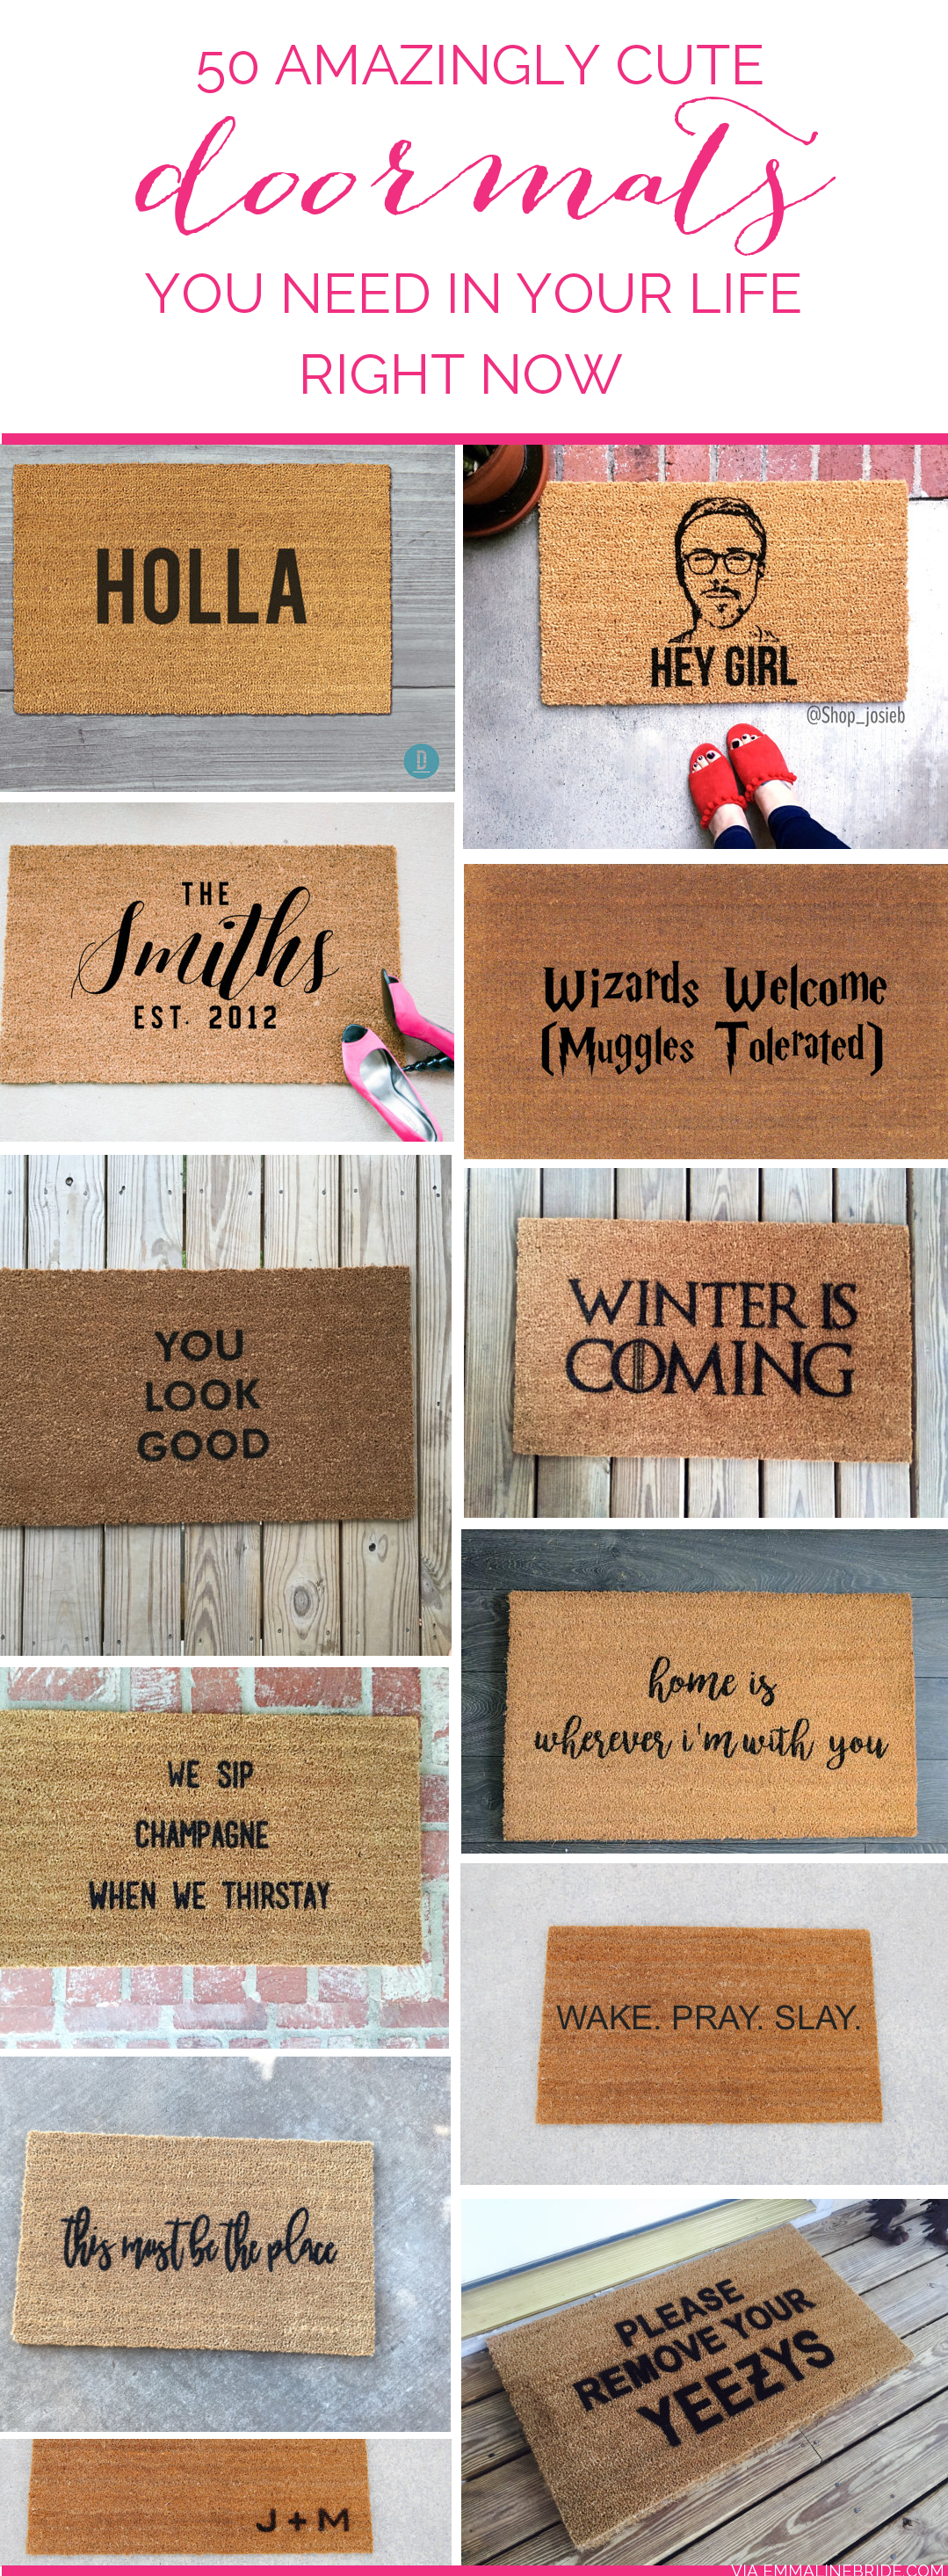 50 Cute Doormats You Need In Your Life Door Mat Diy Front Door